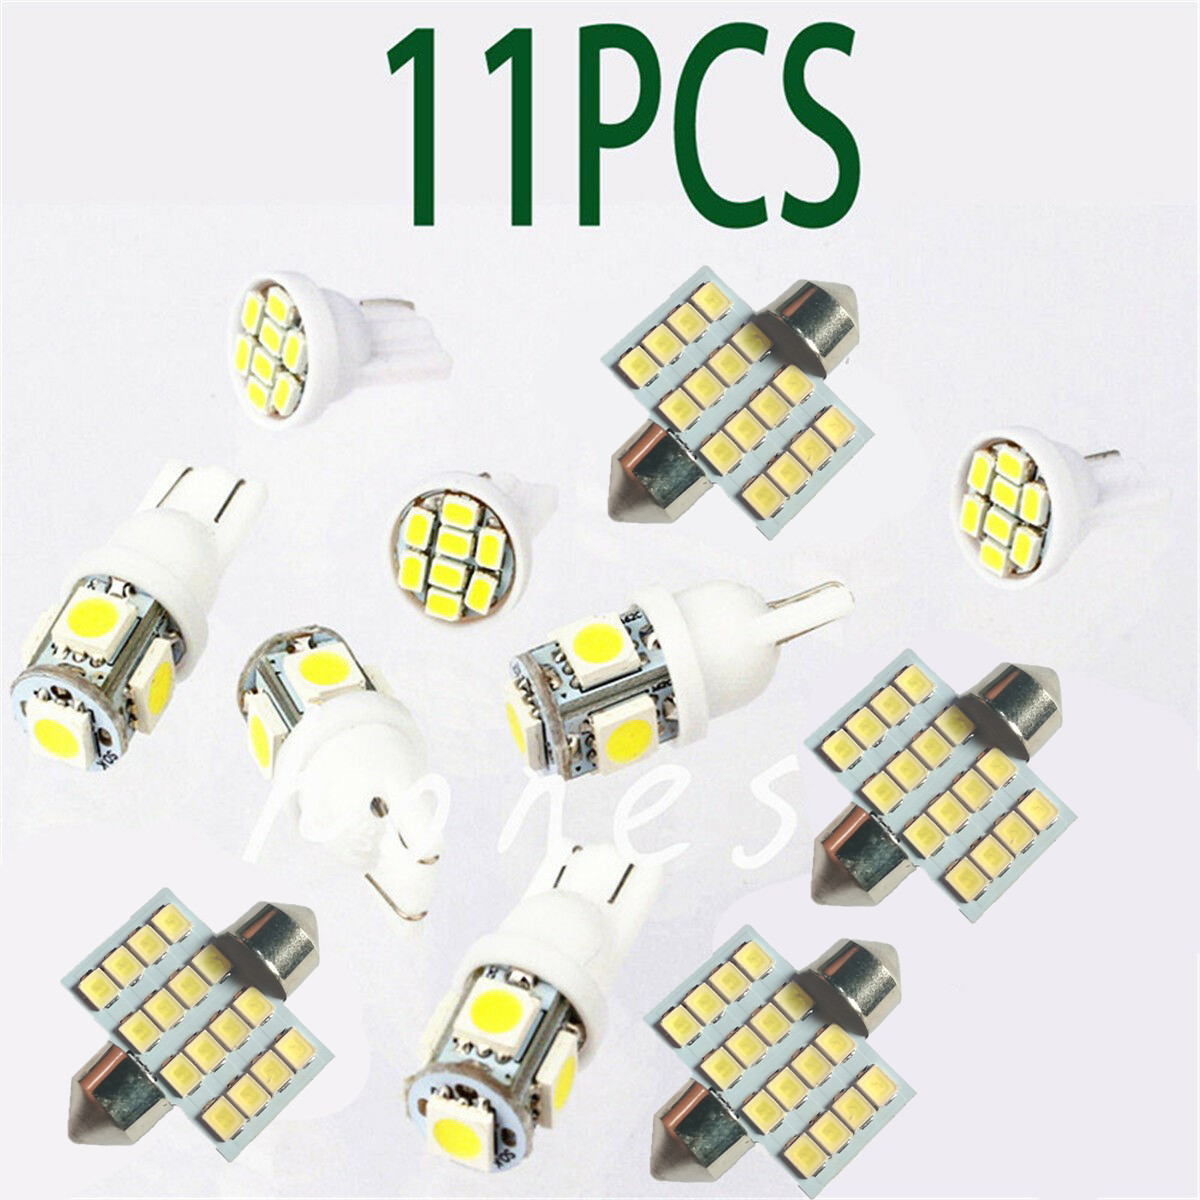 11pcs White LED Lights Interior Package for T10 /& 31mm Map Dome License Plate